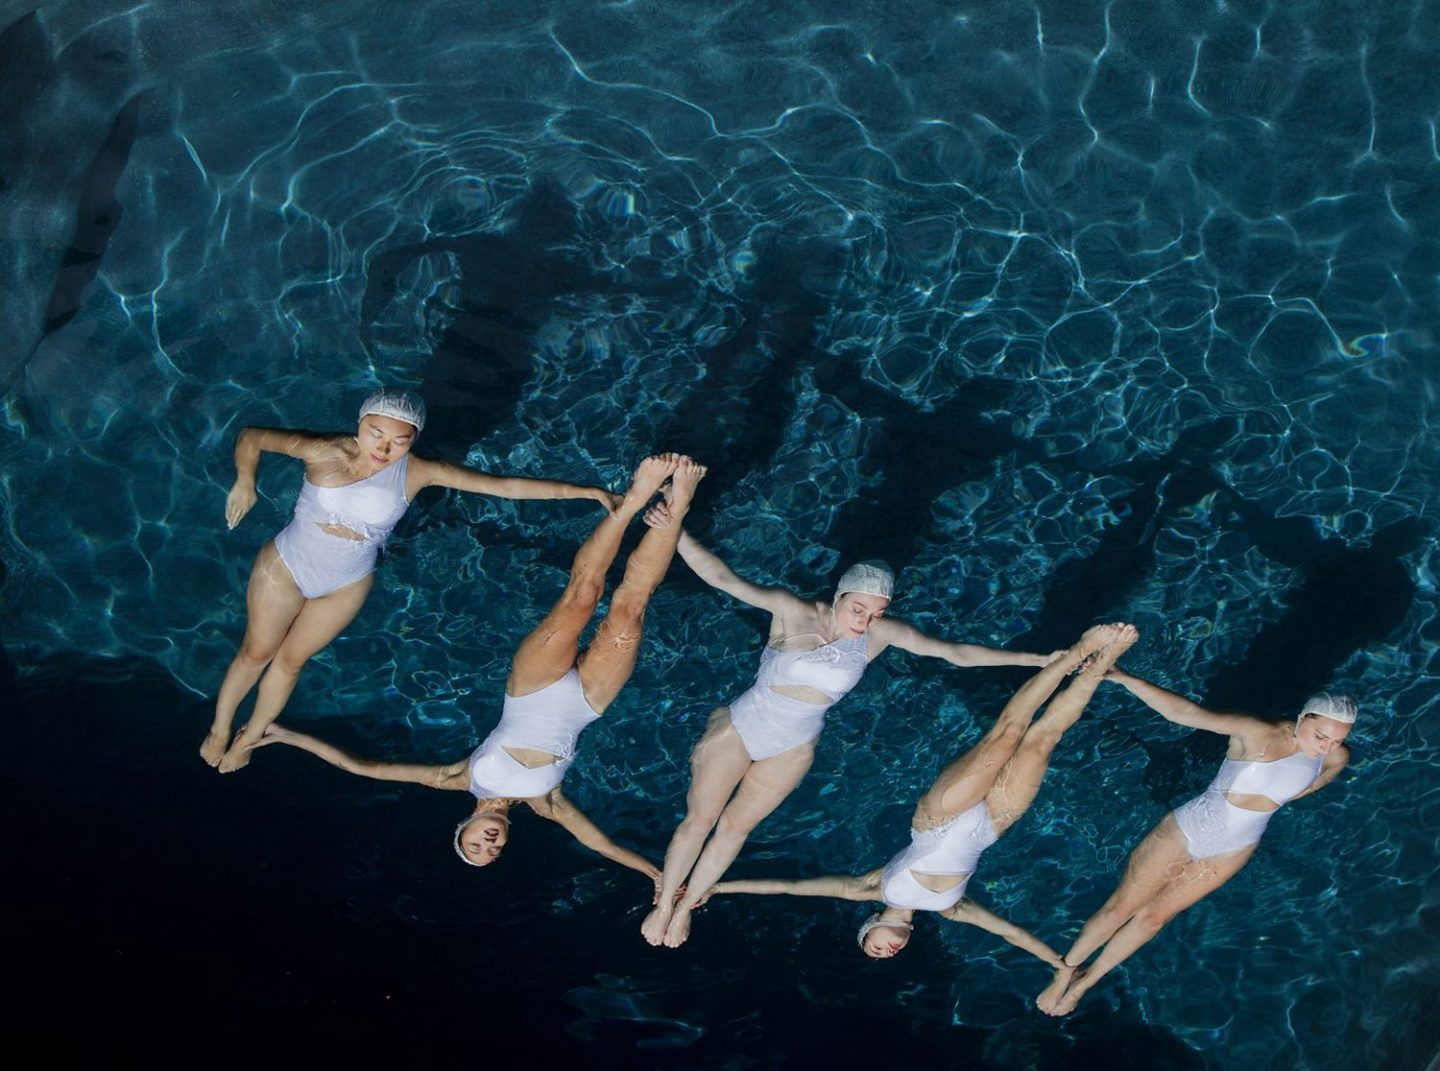 iGNANT_Photography_Emma_Hartvig_The_Swimmers_2